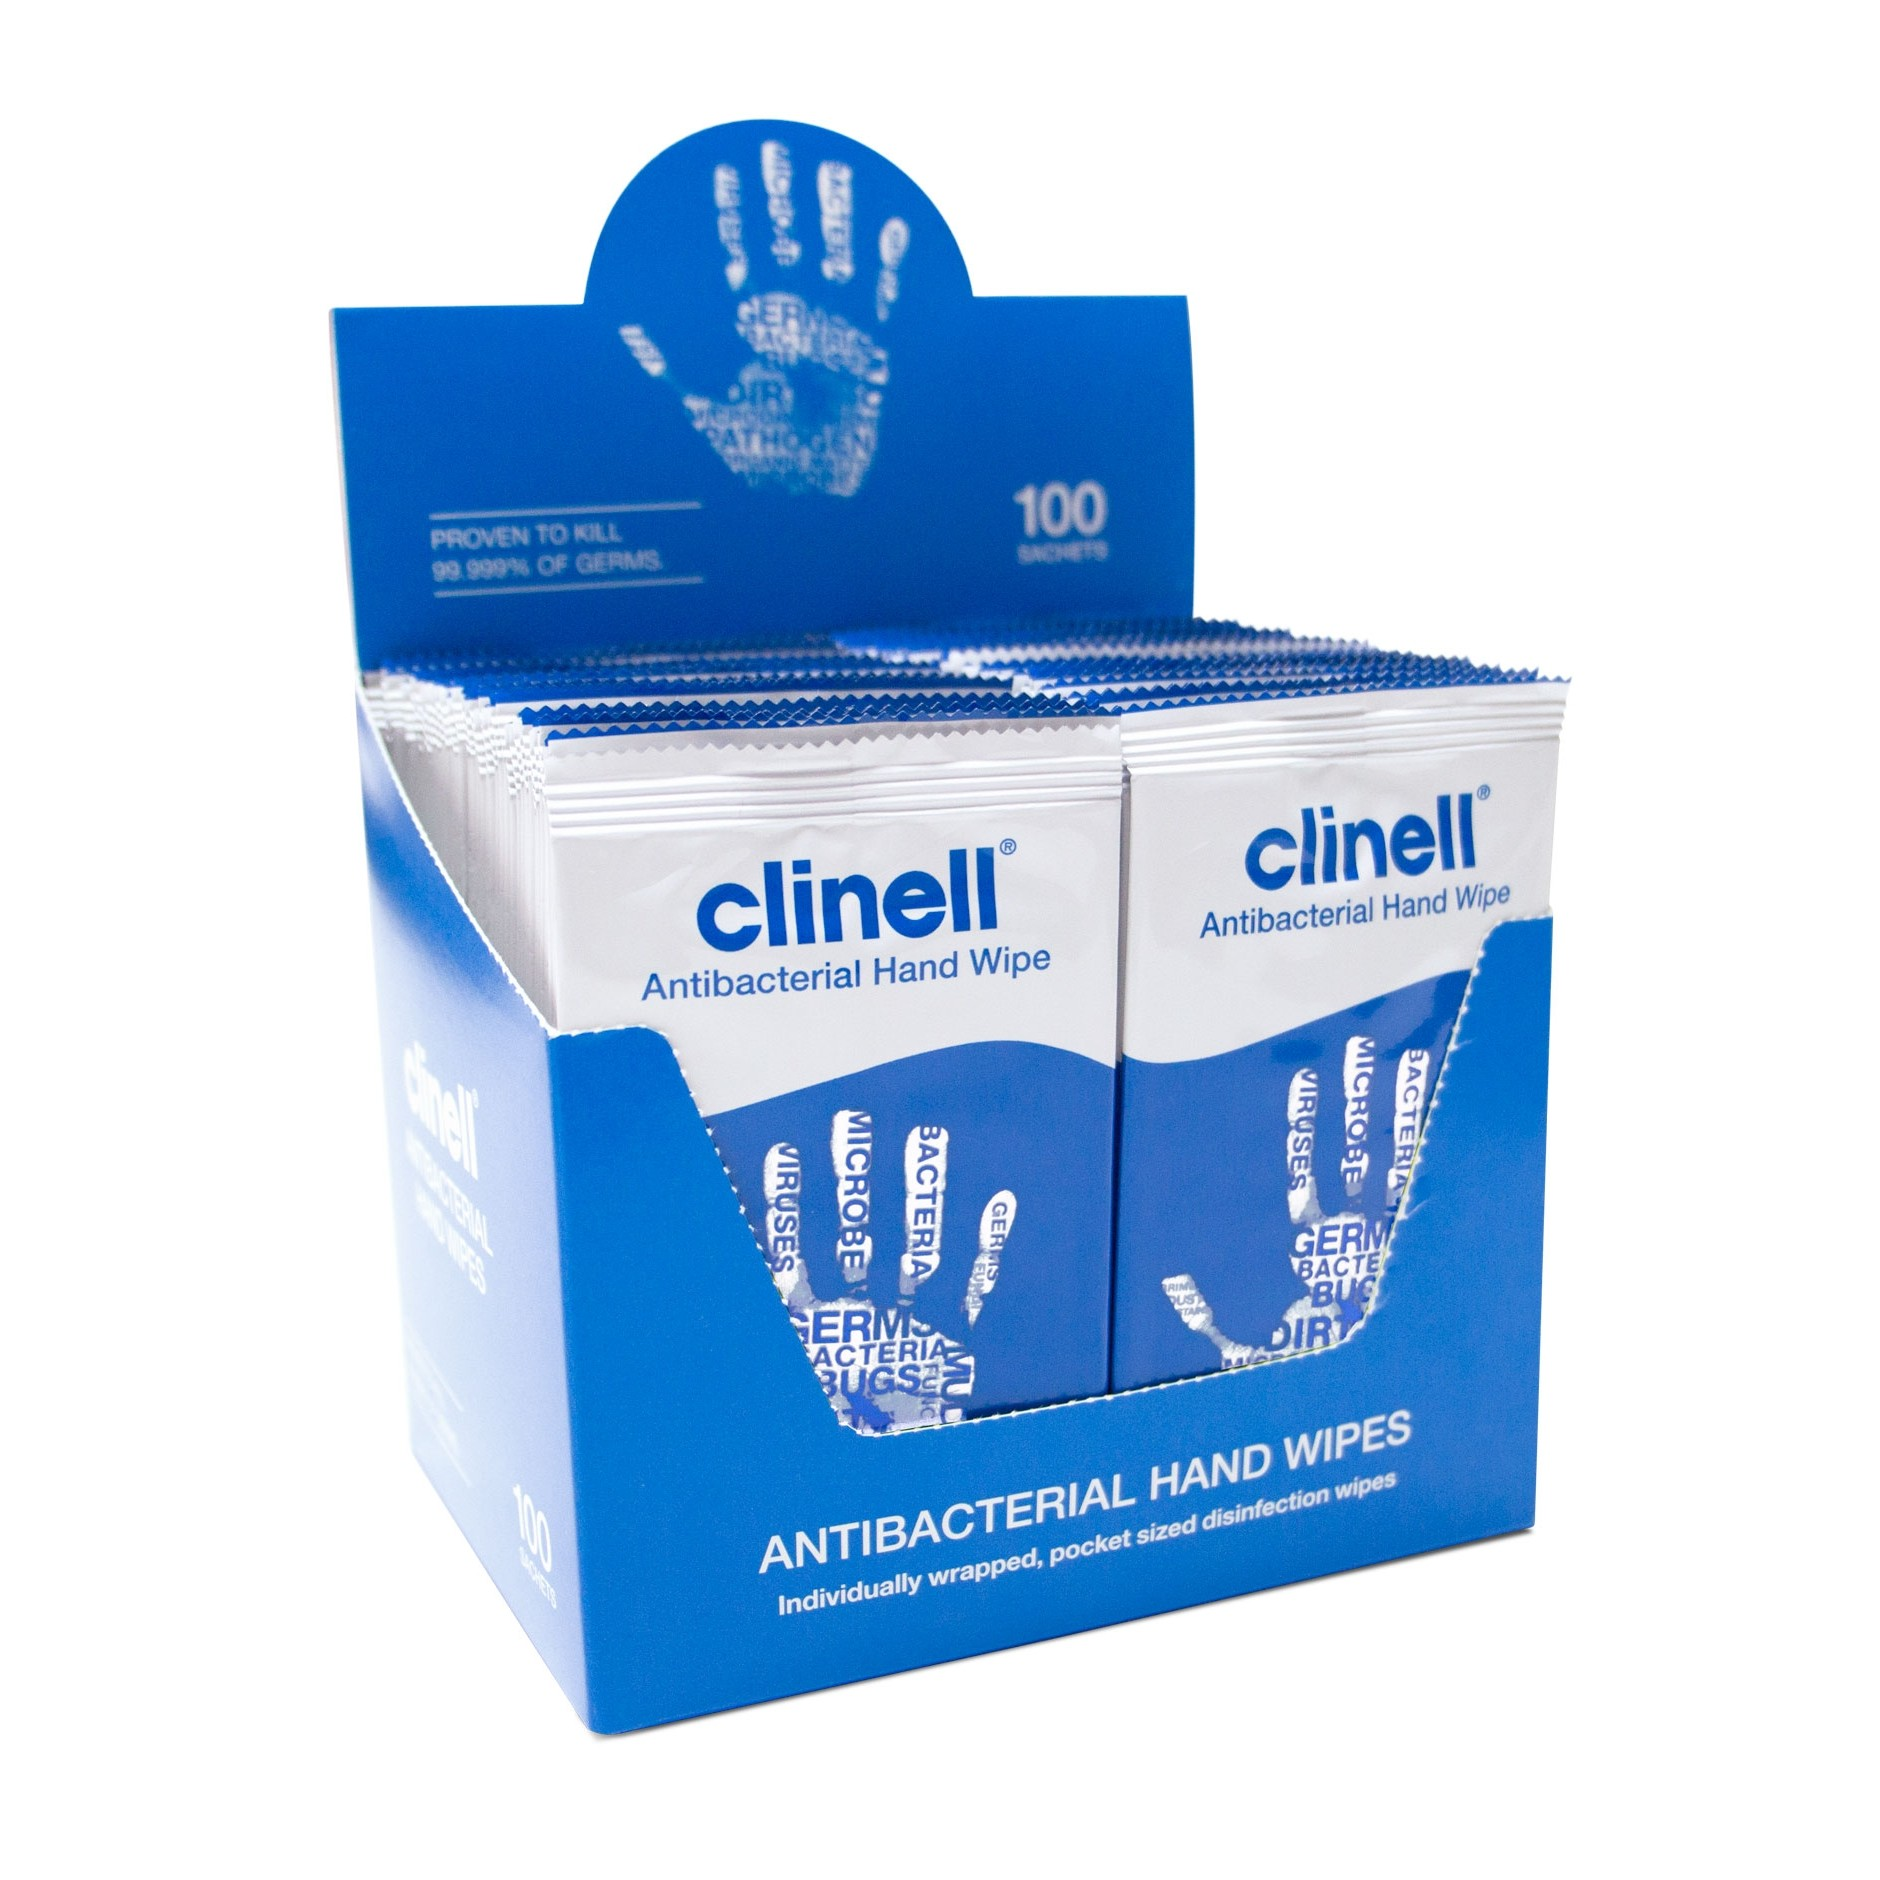 clinell_antibacterial_hand_wipes_-_100_sachets